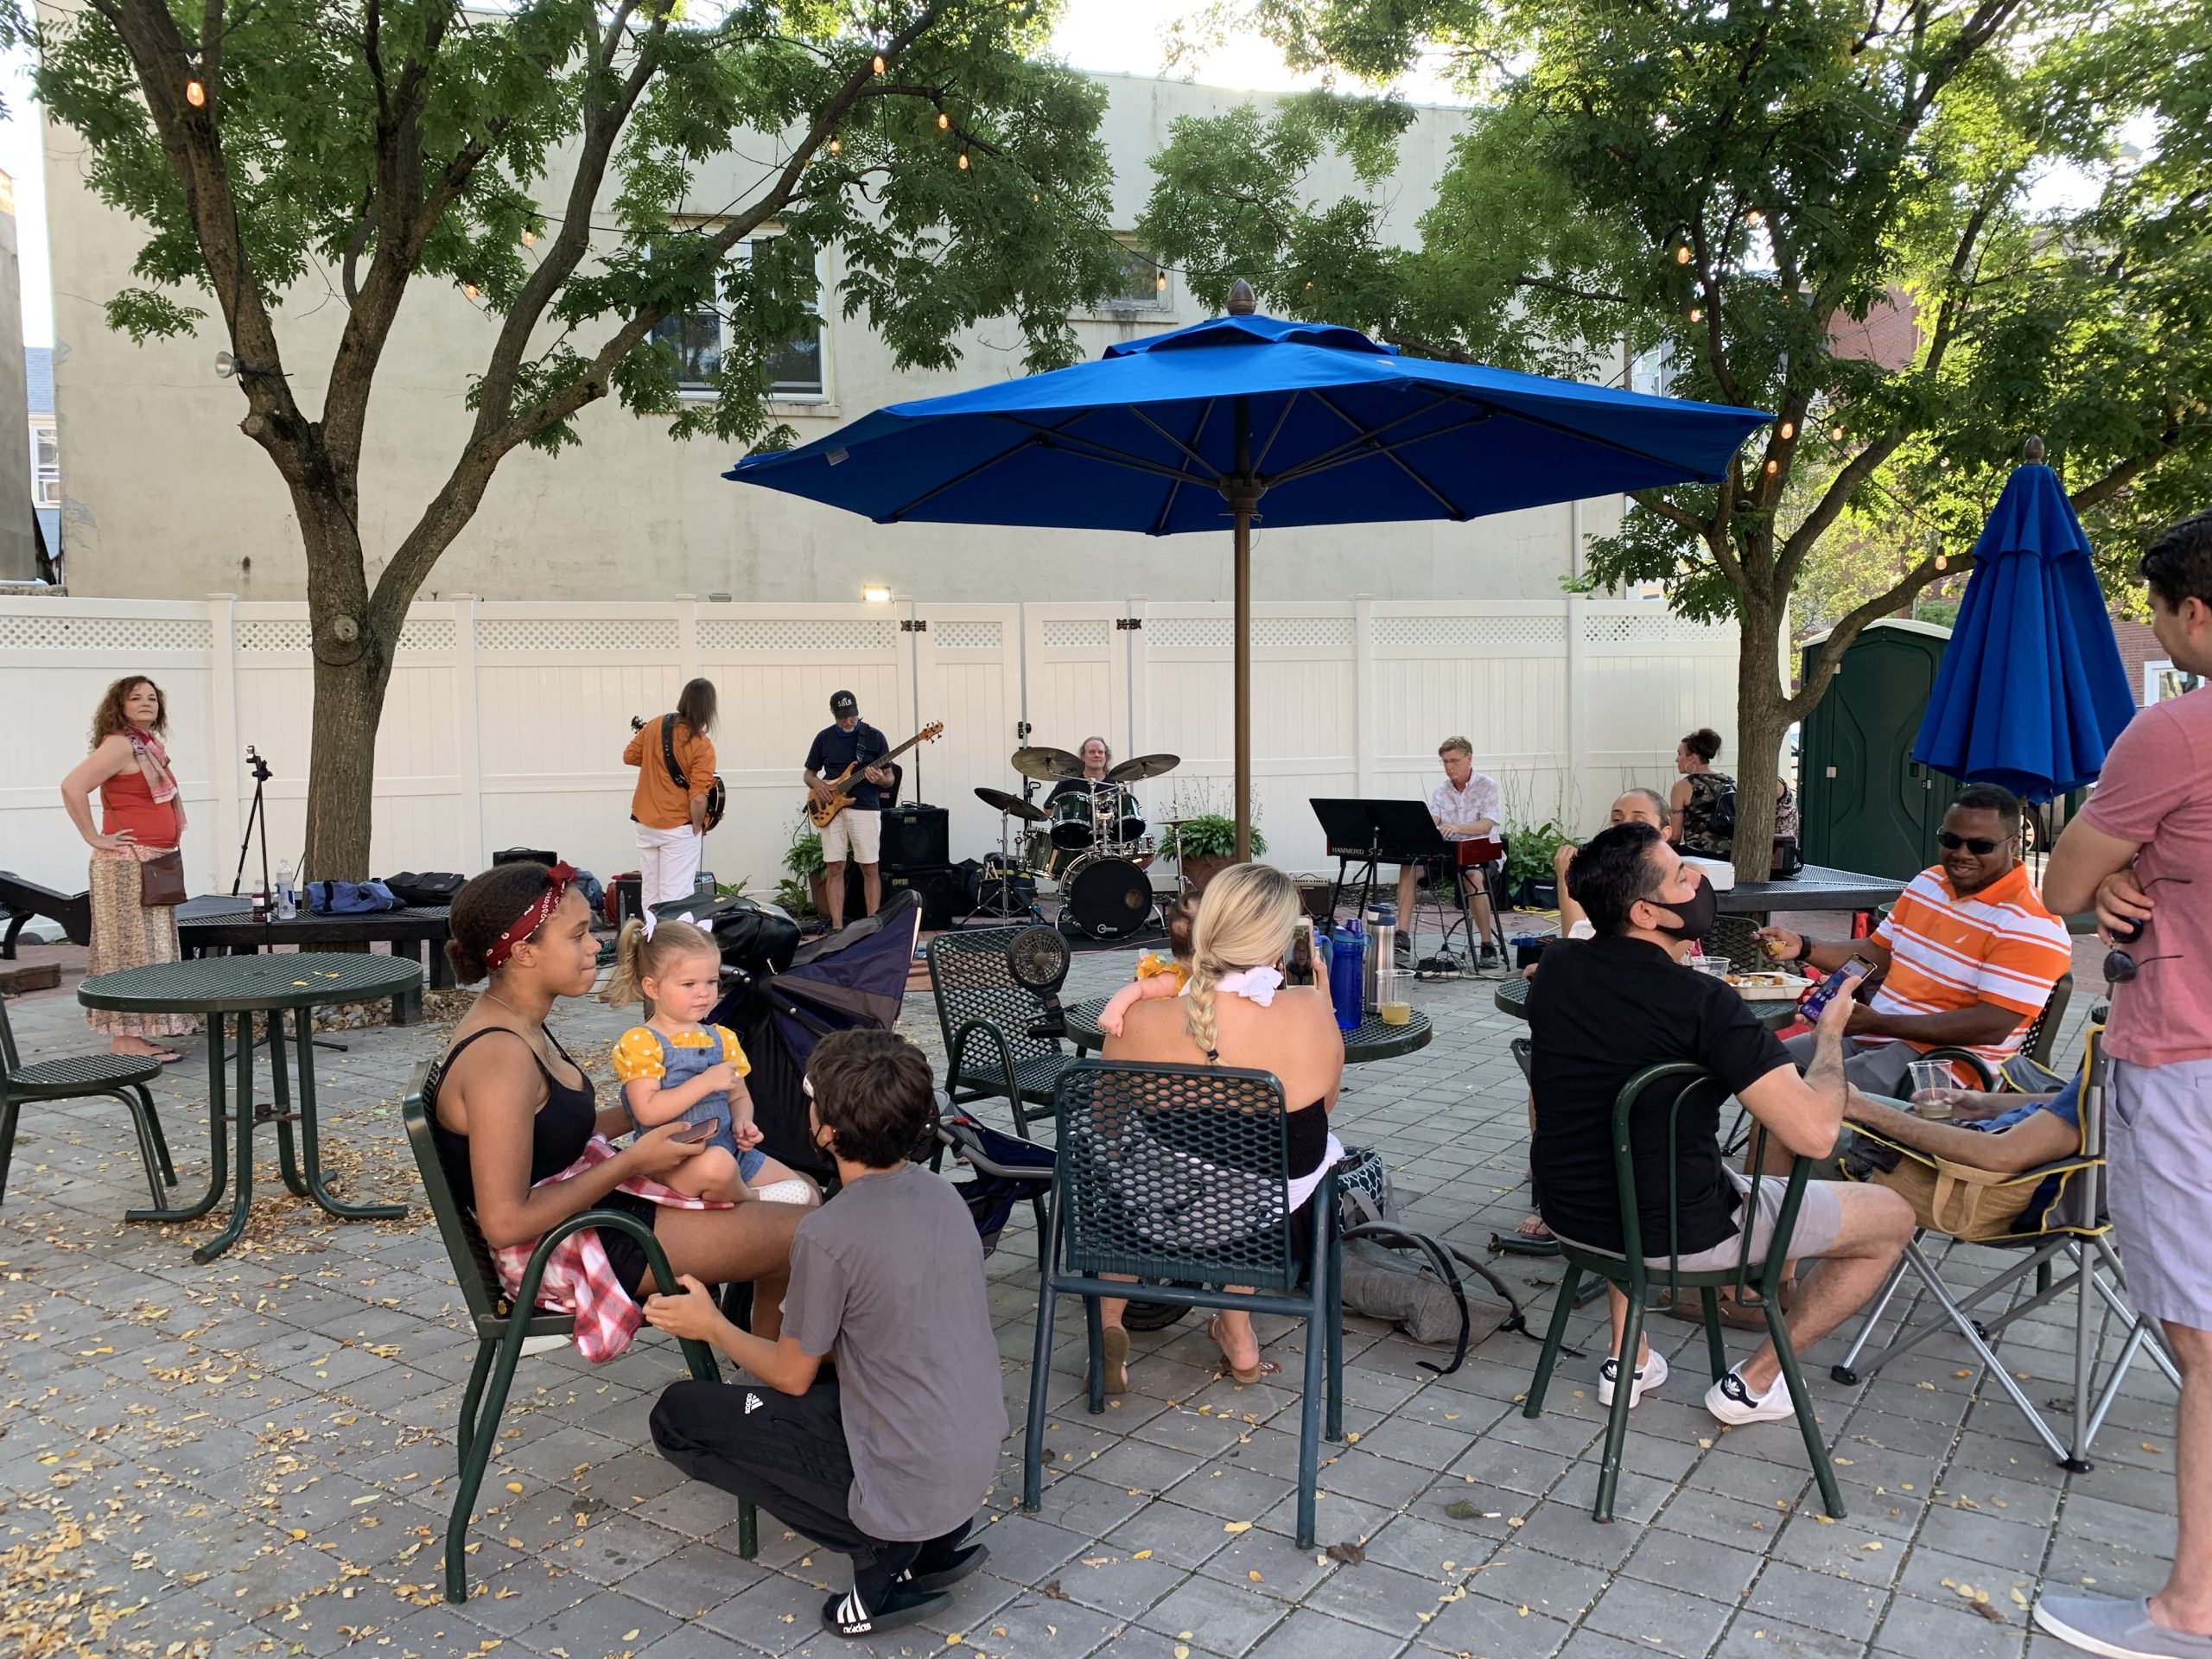 New and long-time residents are discovering and rediscovering Rahway's public spaces, such as the Rahway District Arts Park, amid social distancing measures. Image credit: The RA+BP